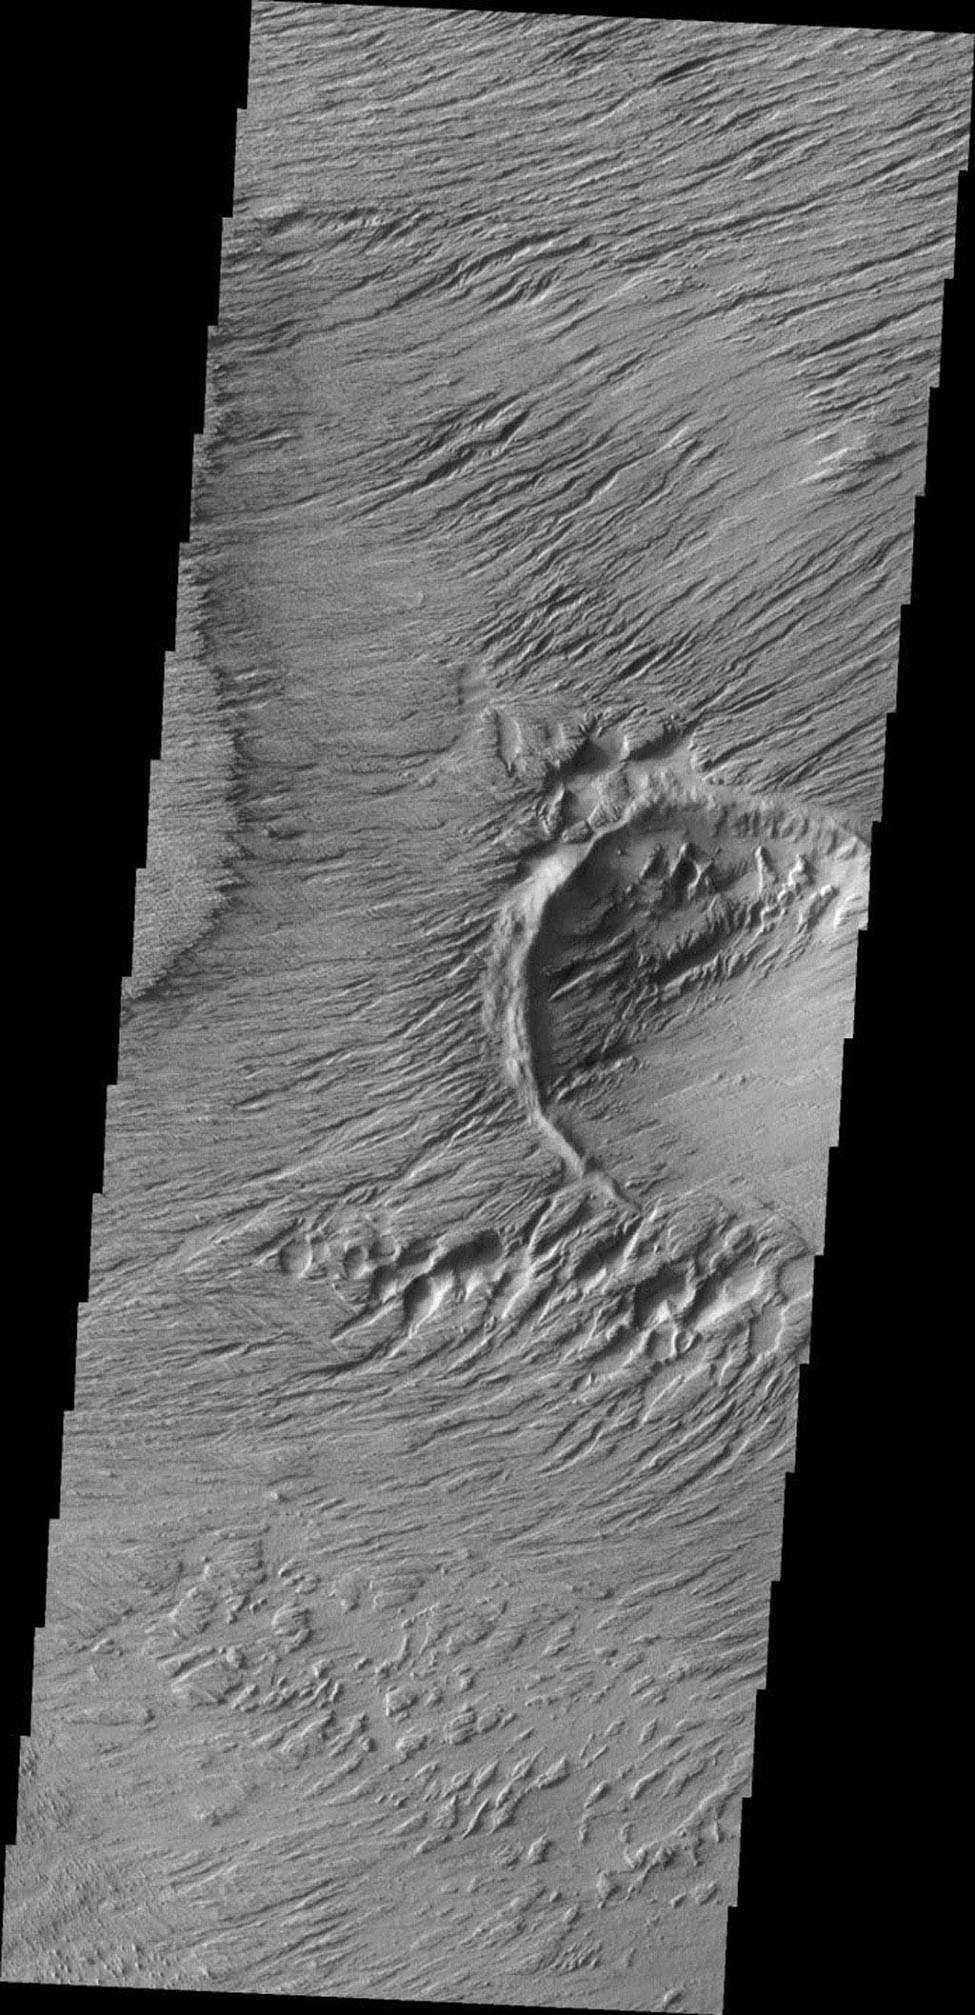 This image from NASA's Mars Odyssey shows a region of extensive erosion by the wind on Mars.